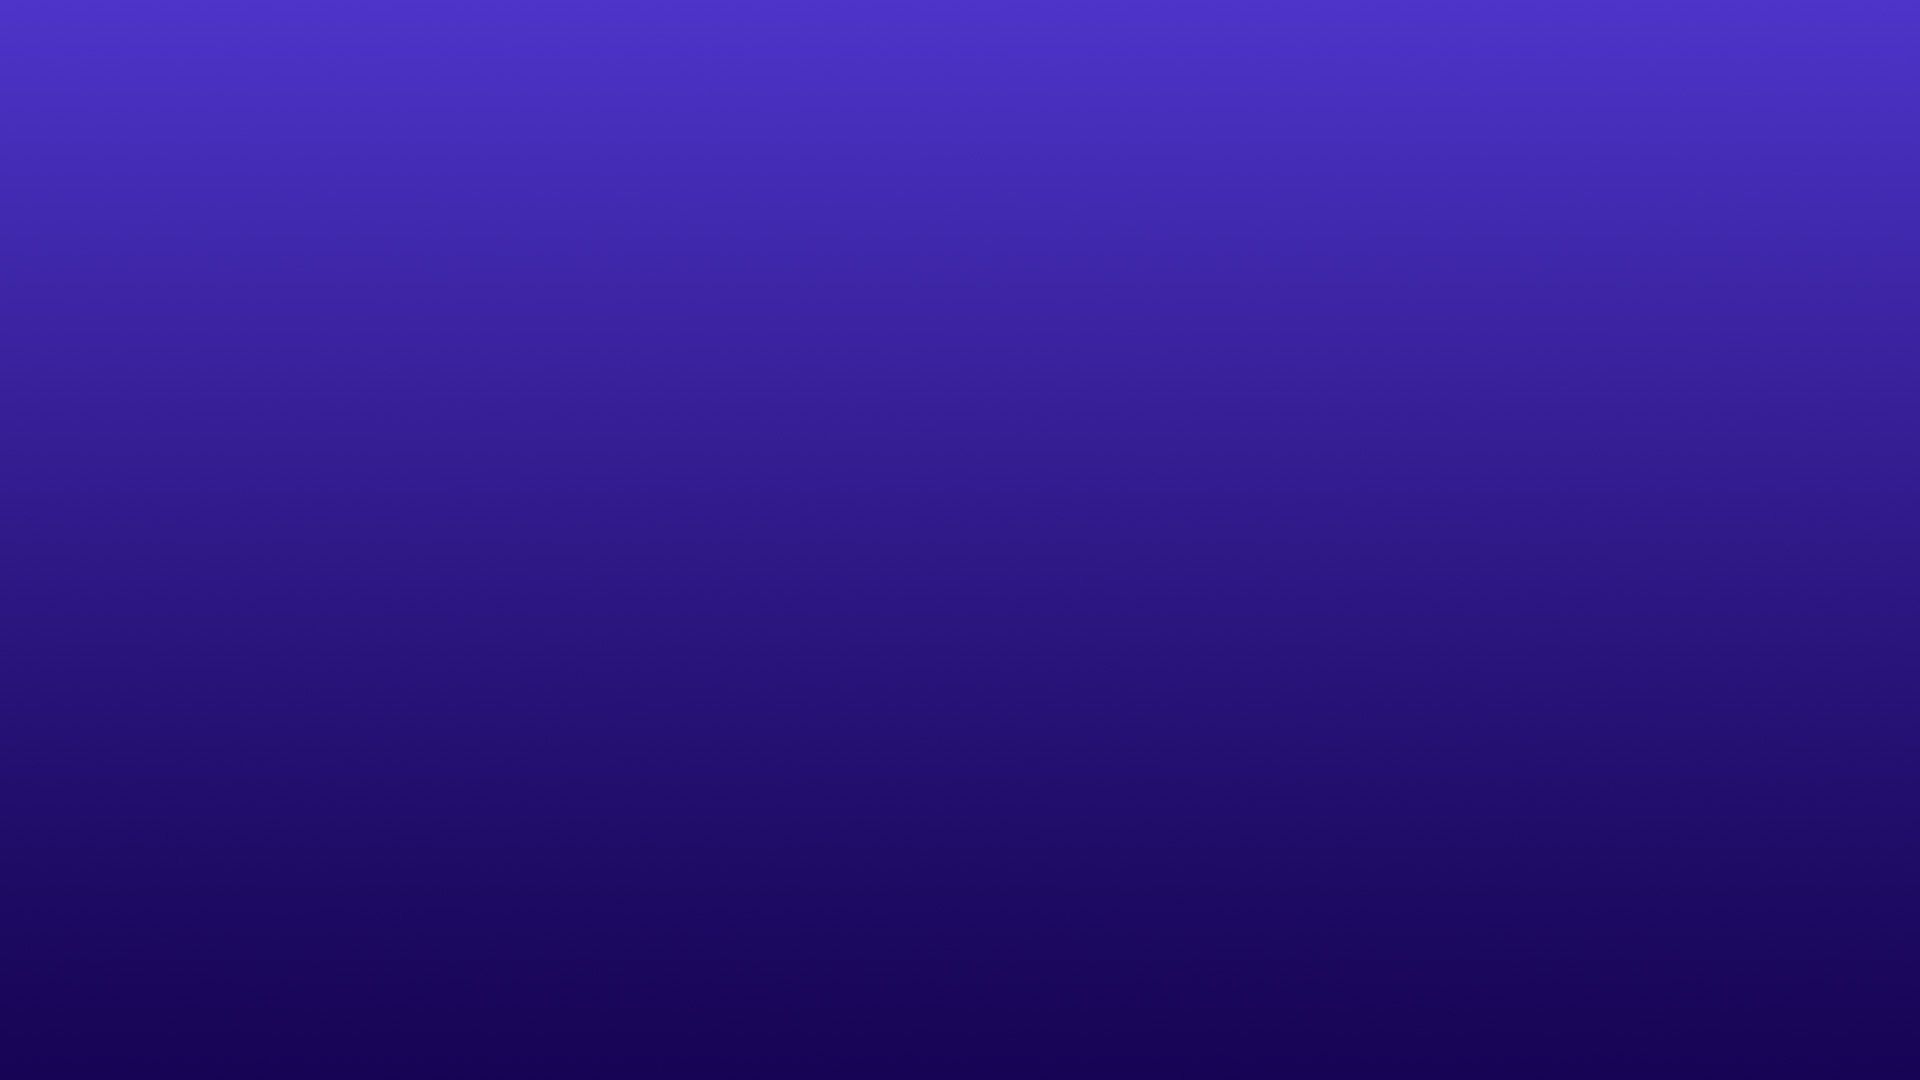 violet-Gradient-Background